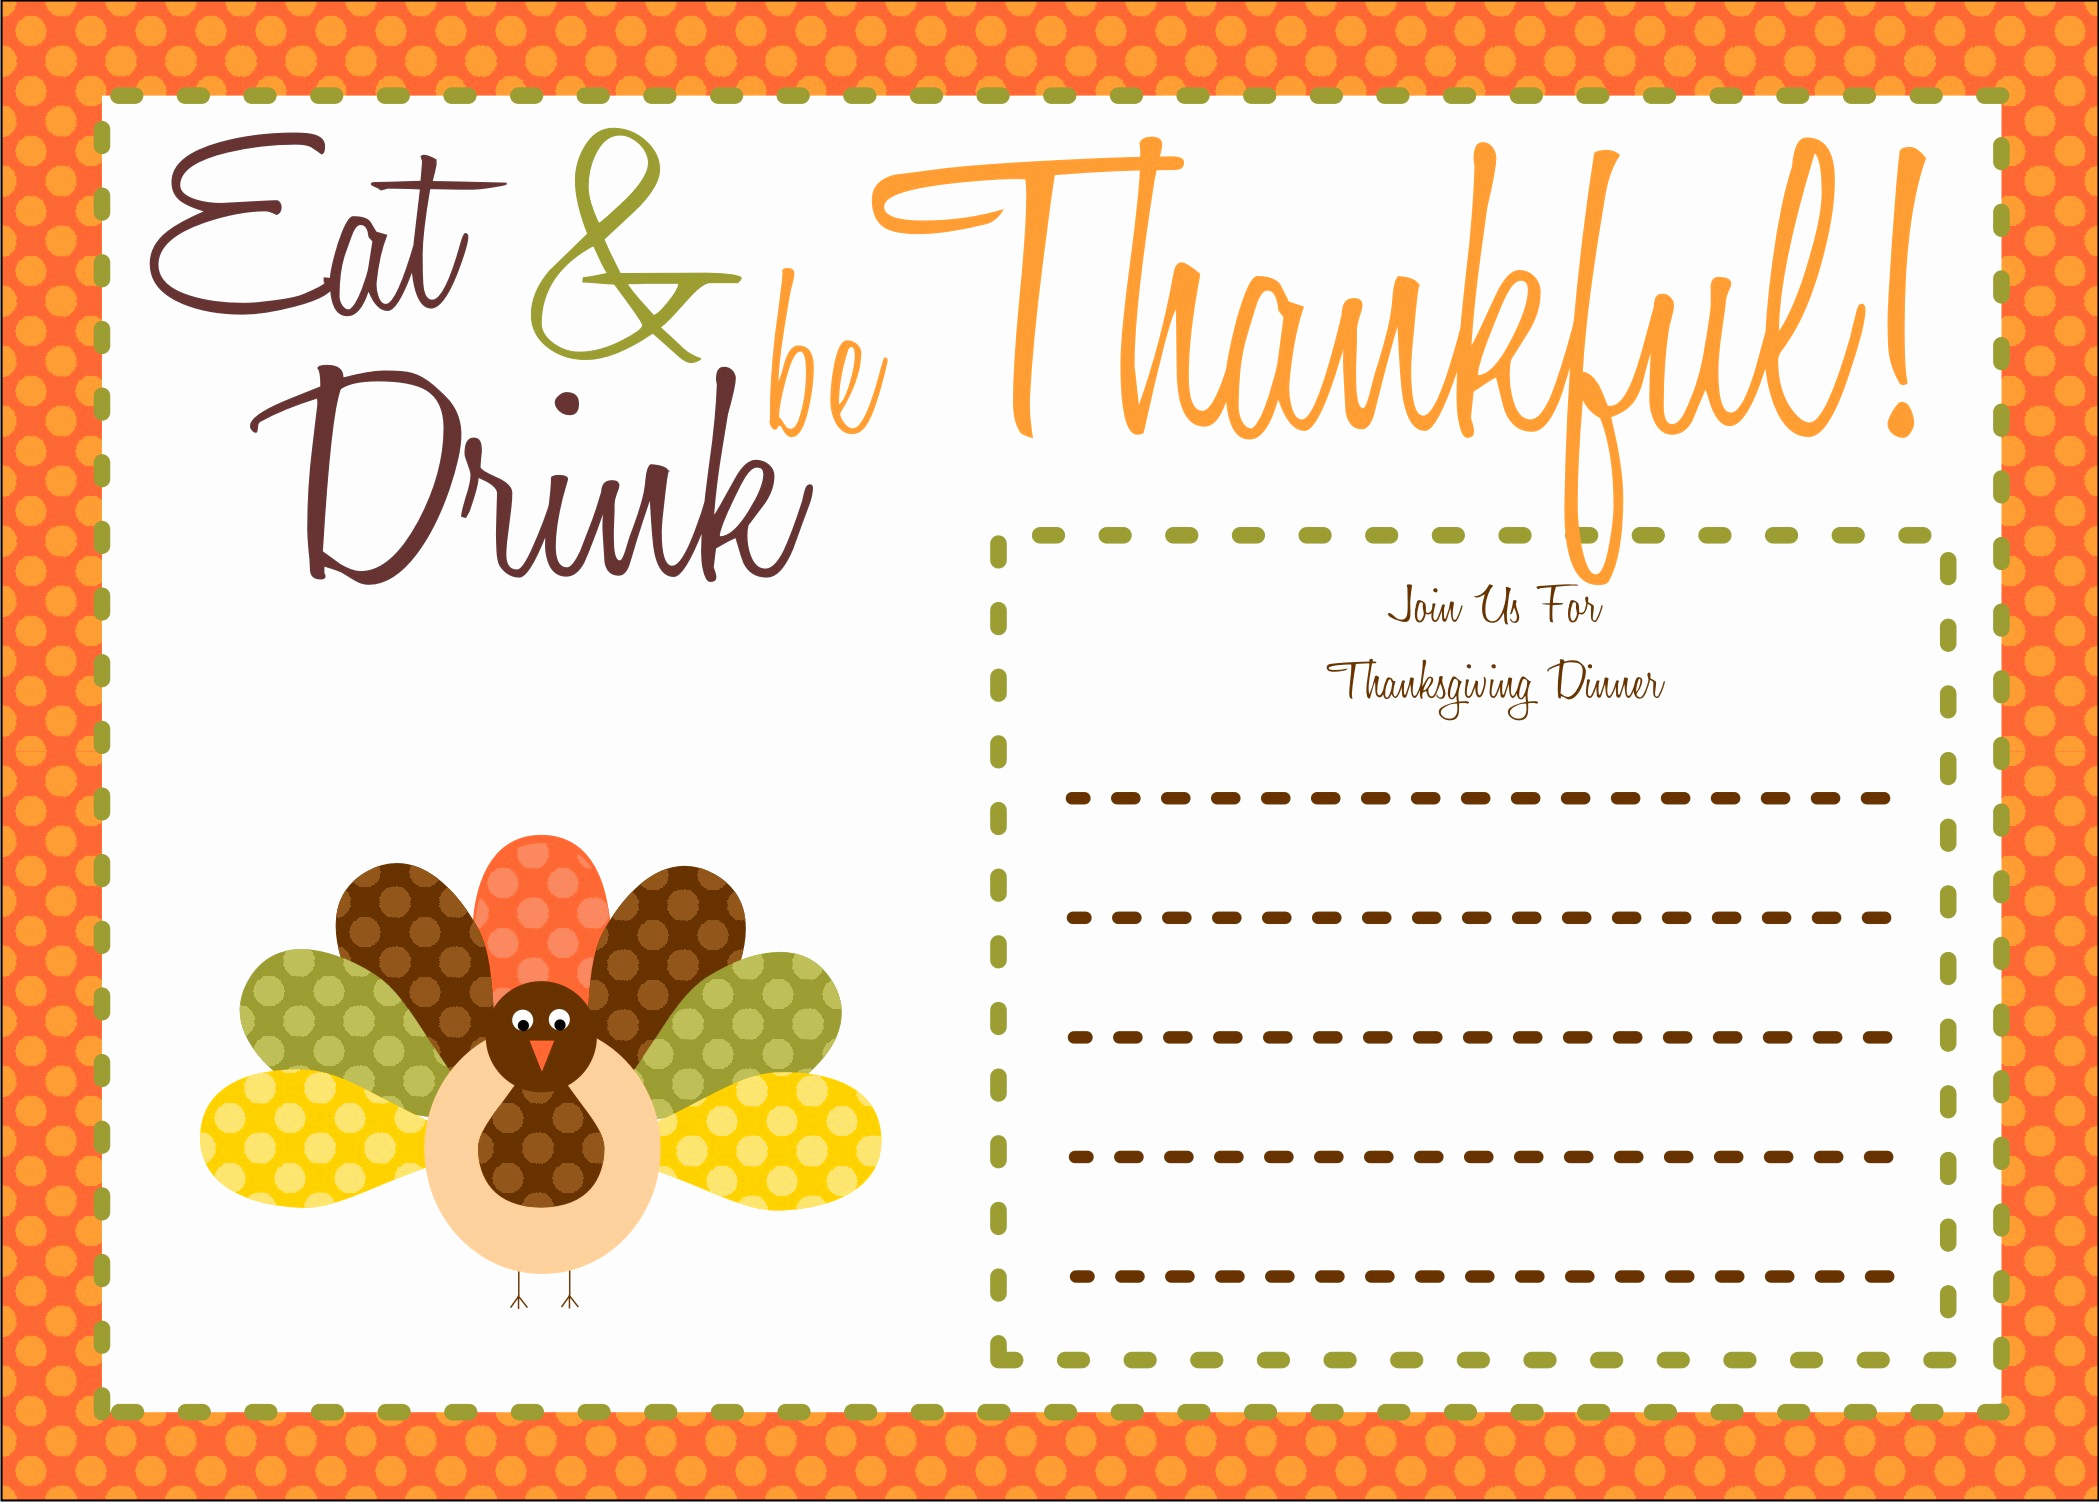 Thanksgiving Invitation Templates Free Word Elegant Free Thanksgiving Printables From the Party Bakery